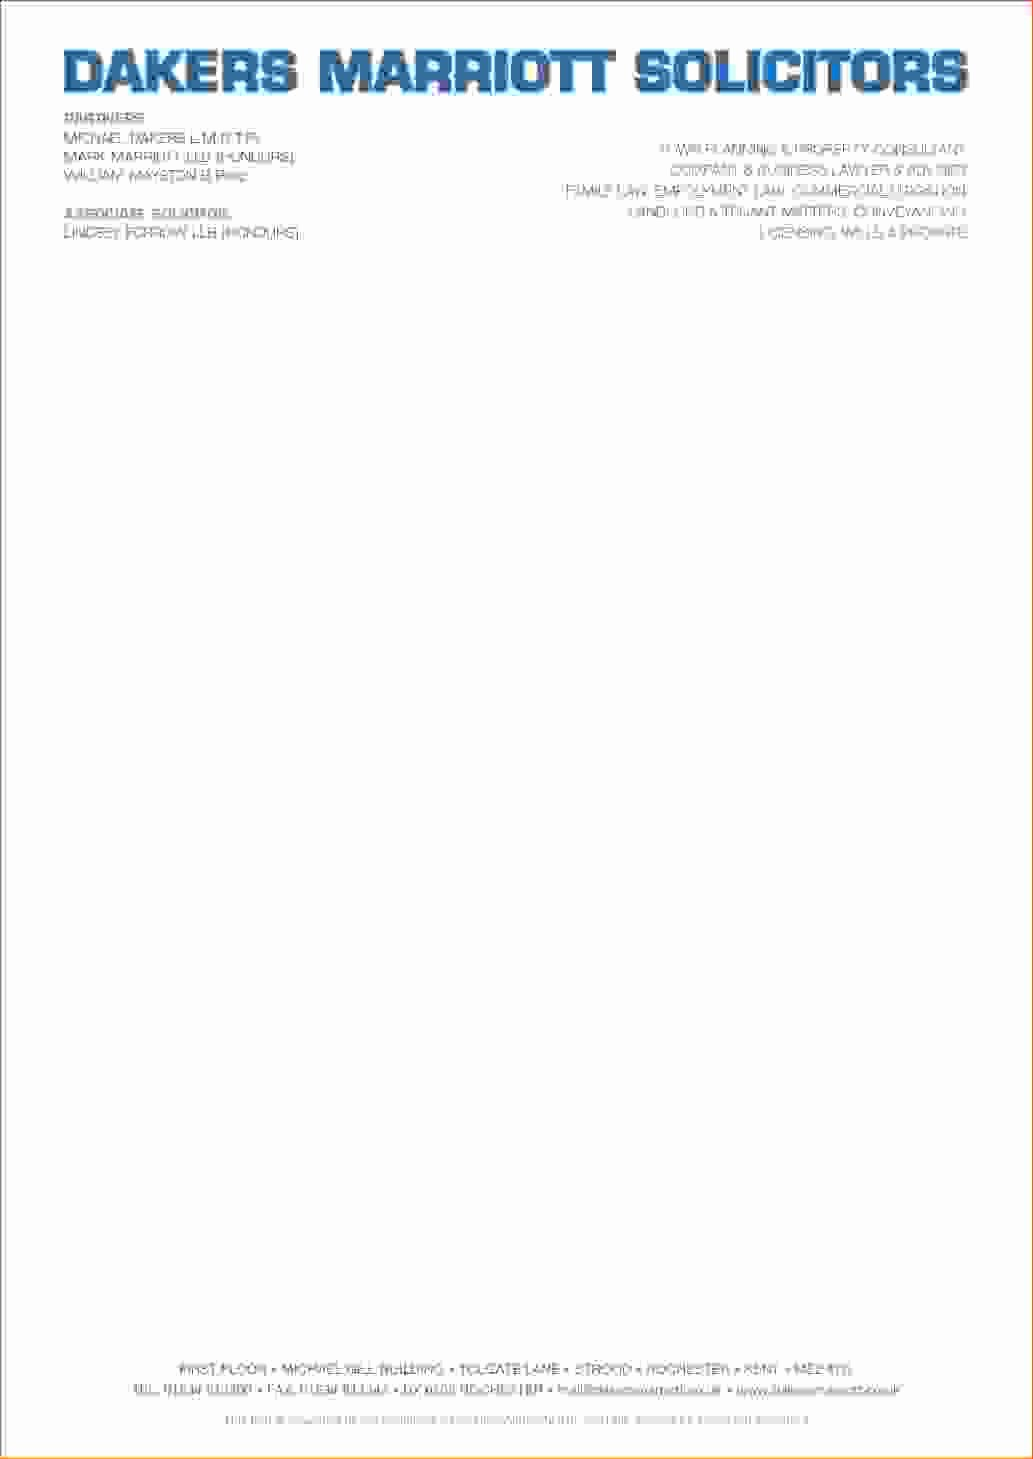 8 business letterhead examples